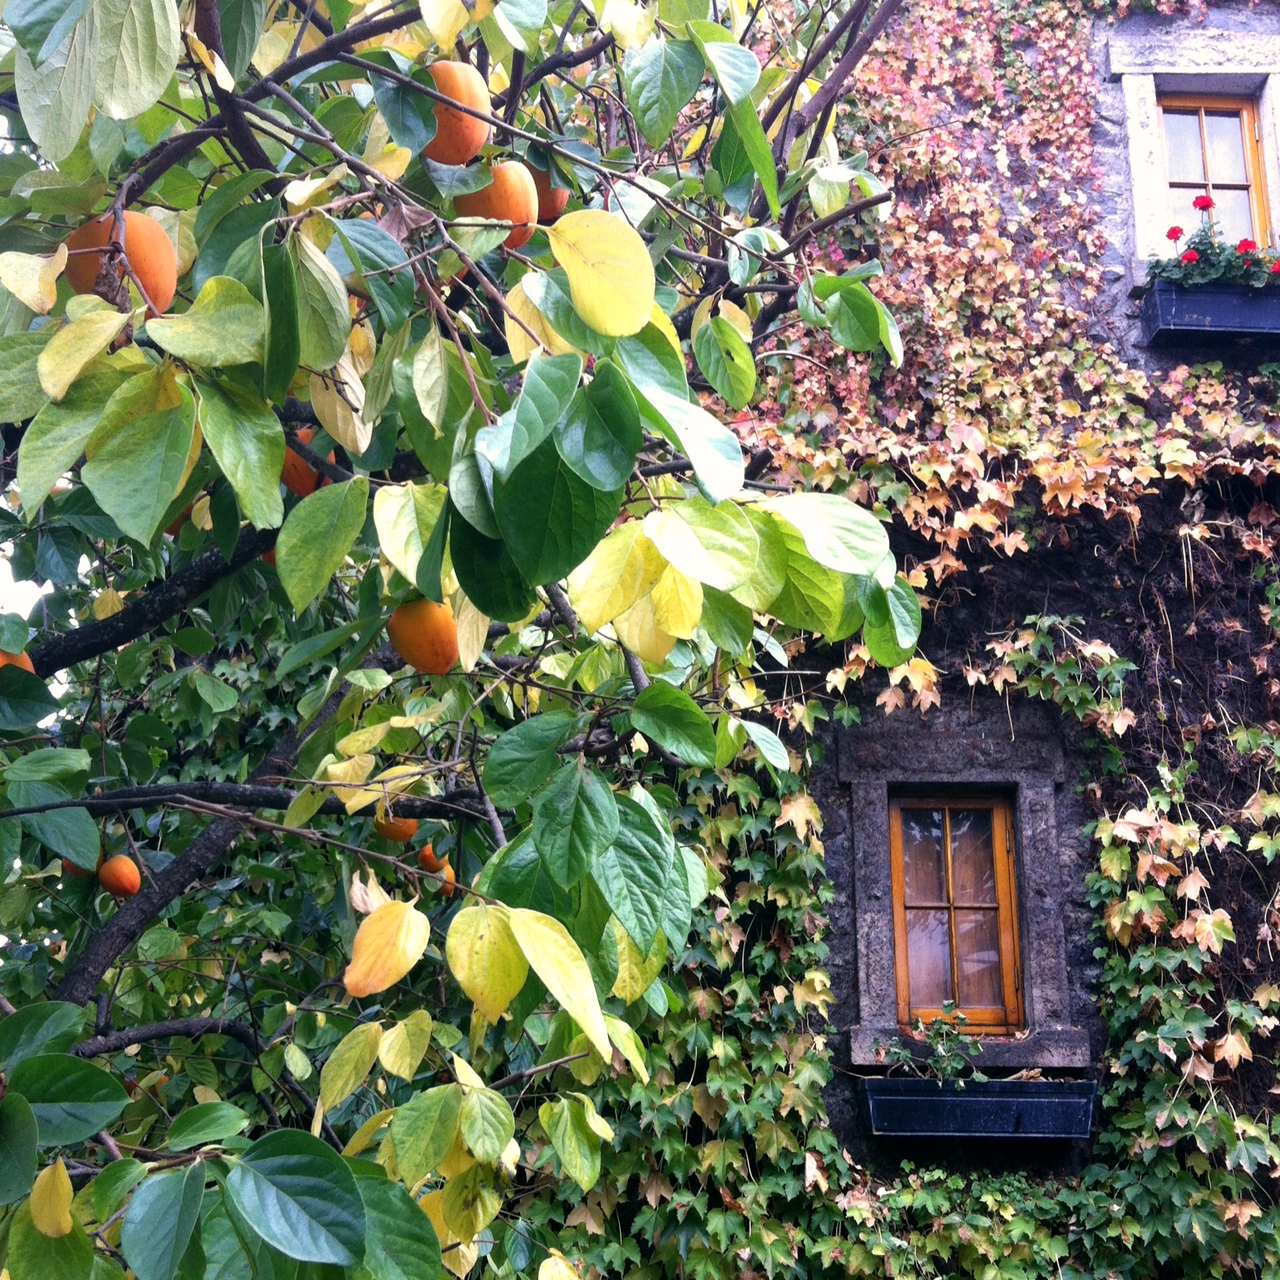 Persimmons at Far Niente